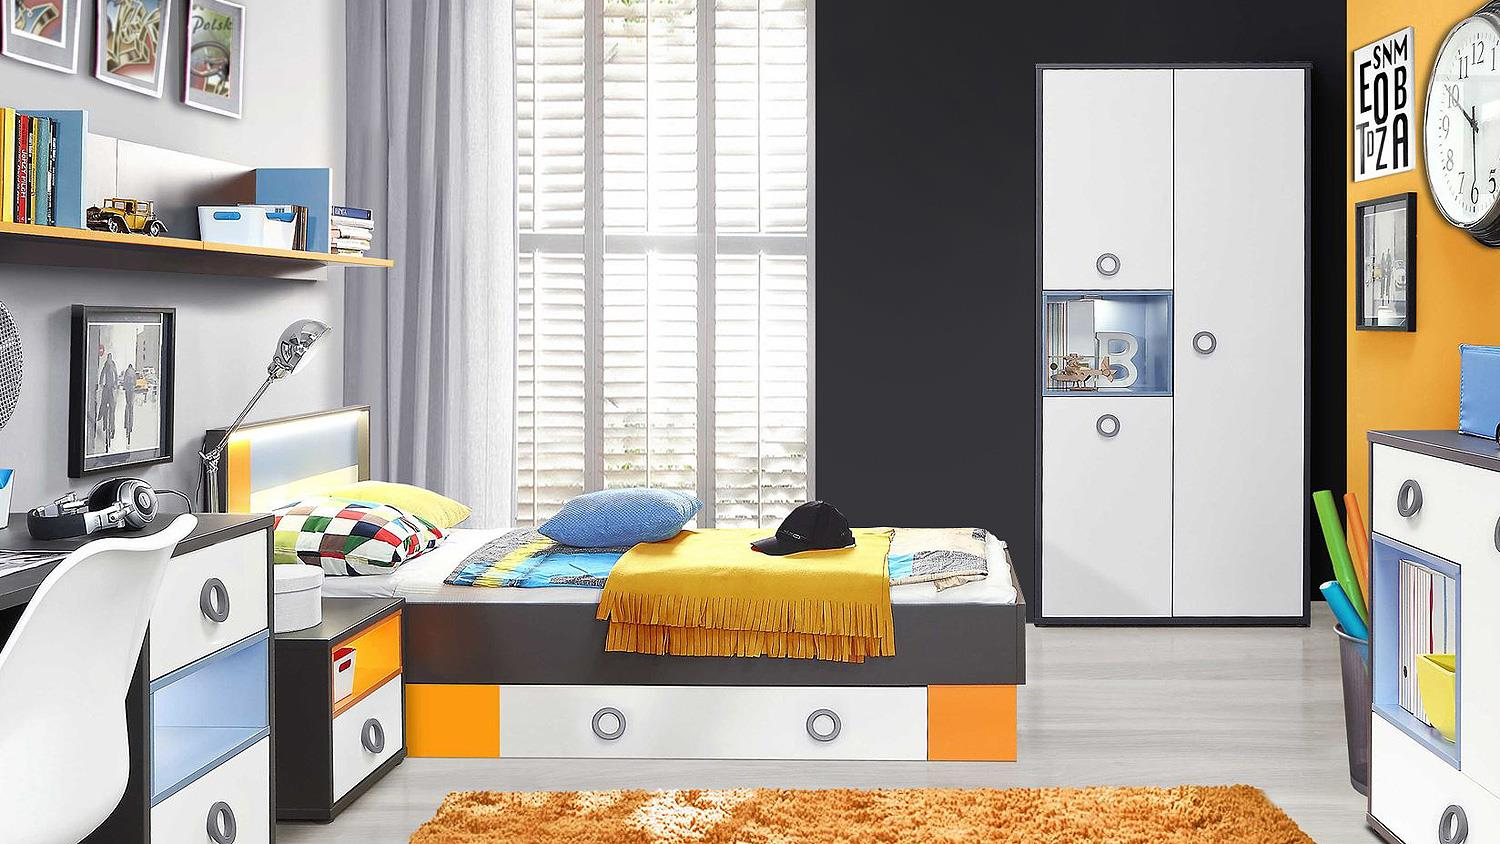 Jugenzimmer Jugendzimmer Colors Kinderzimmer In Uni Wolfram Grau Weiß Orange Blau